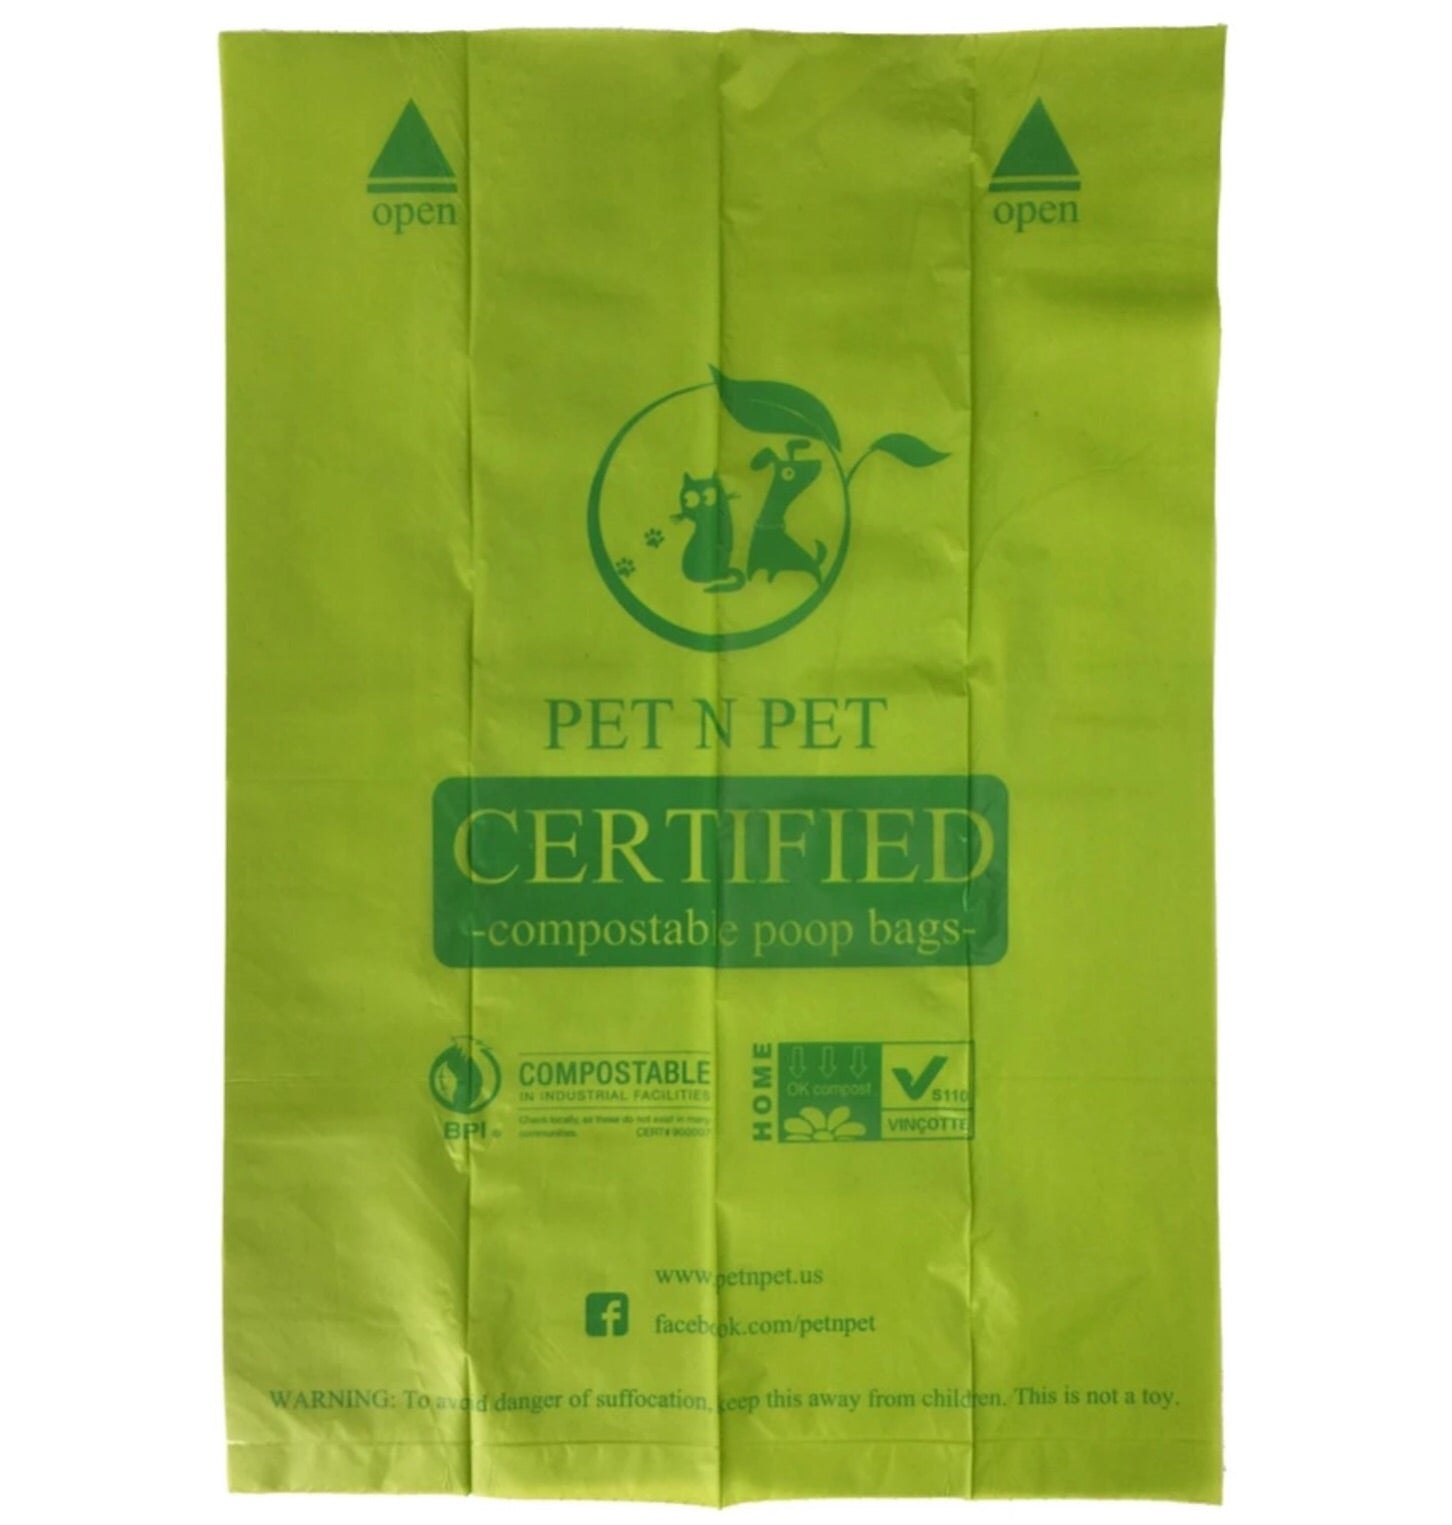 Biodegradable Earth Friendly Pet Waste Bags